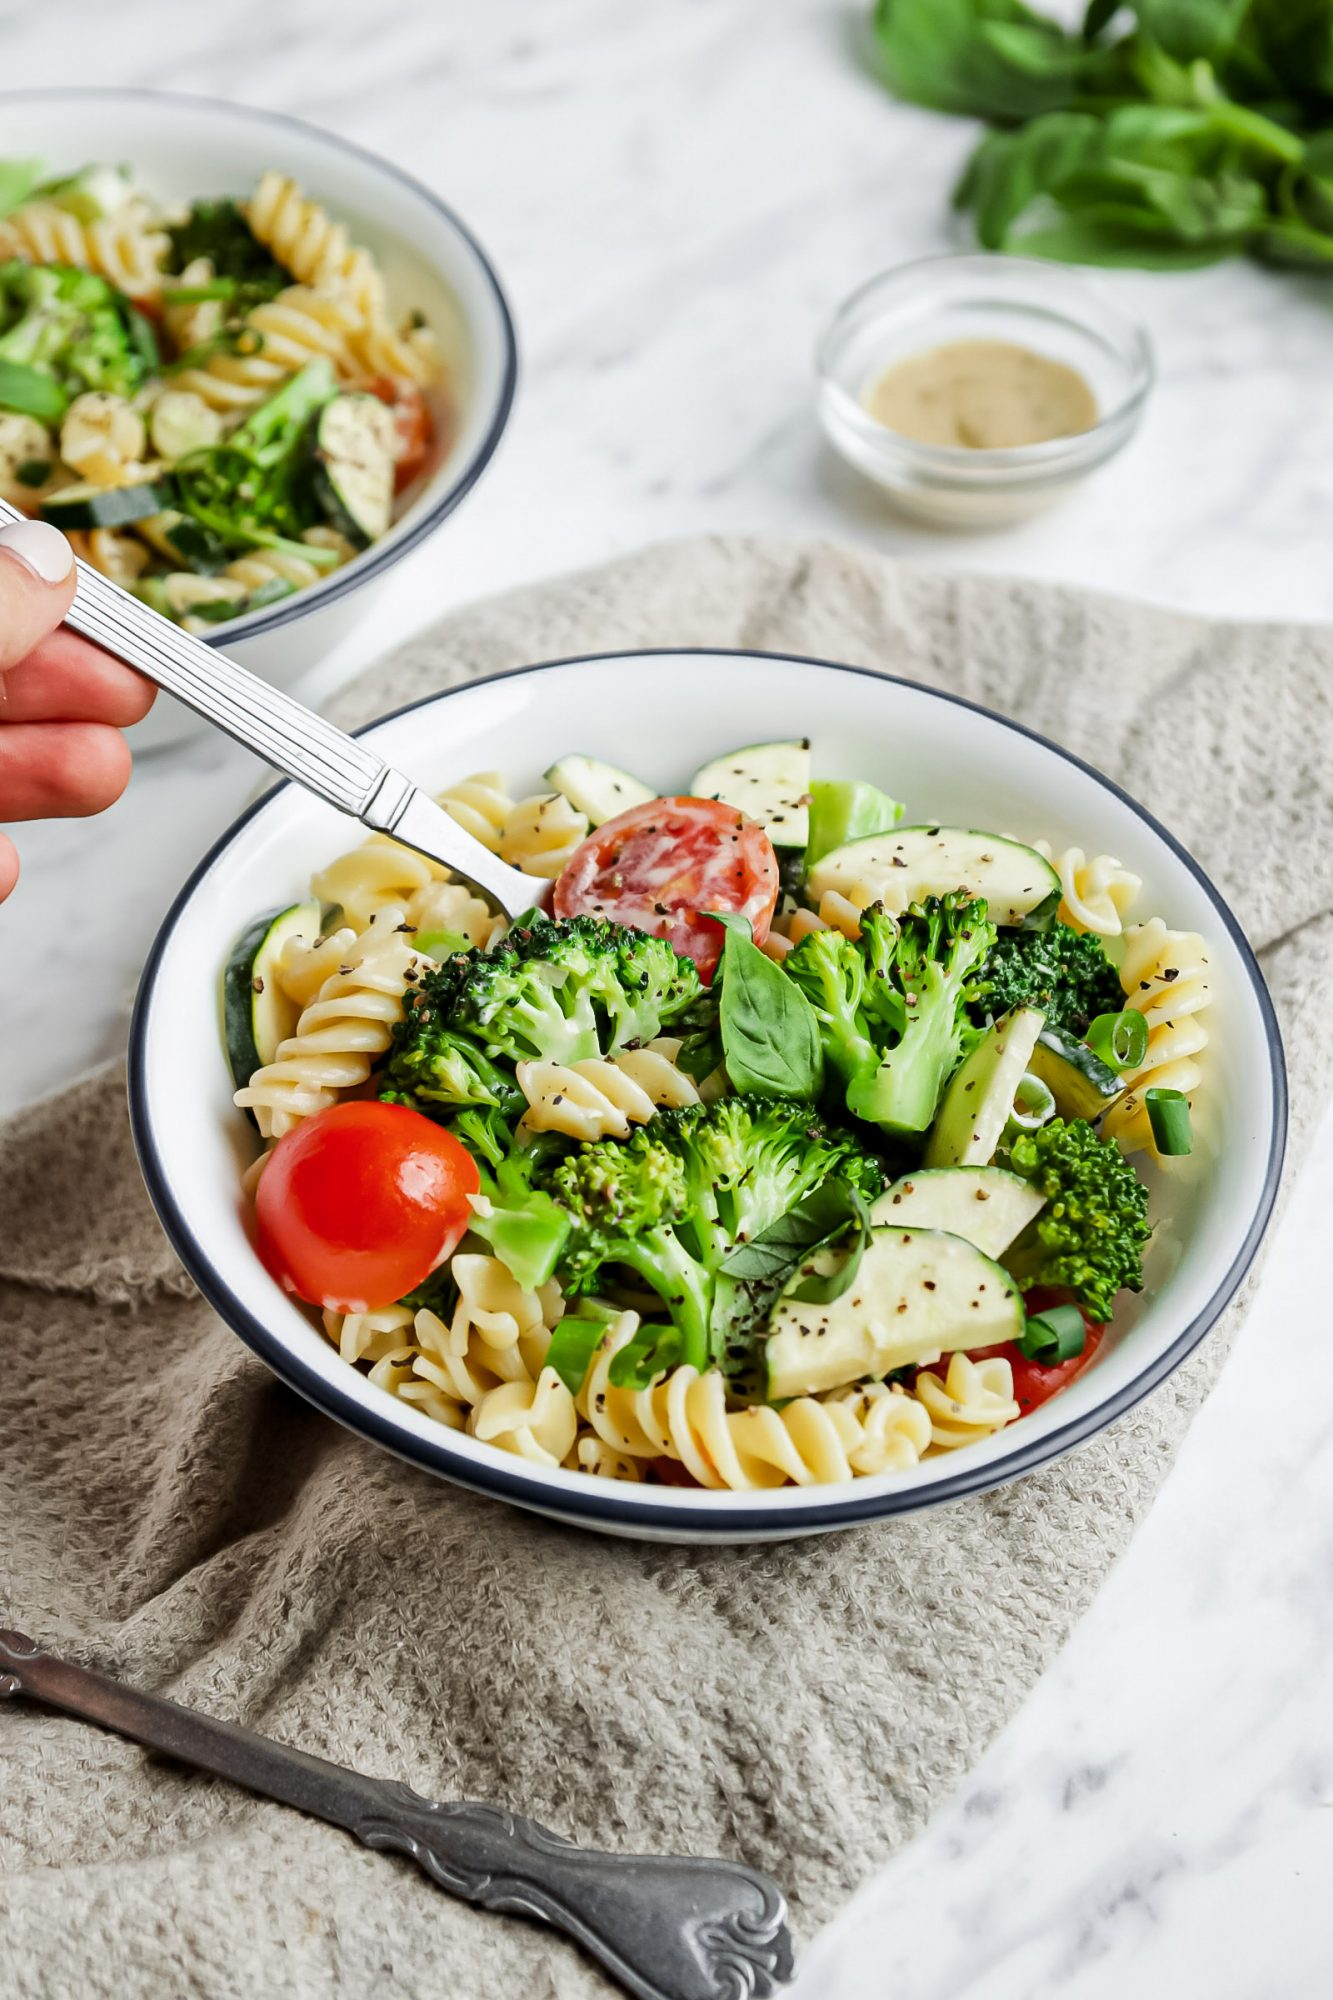 Creamy Vegan Broccoli Pasta Salad